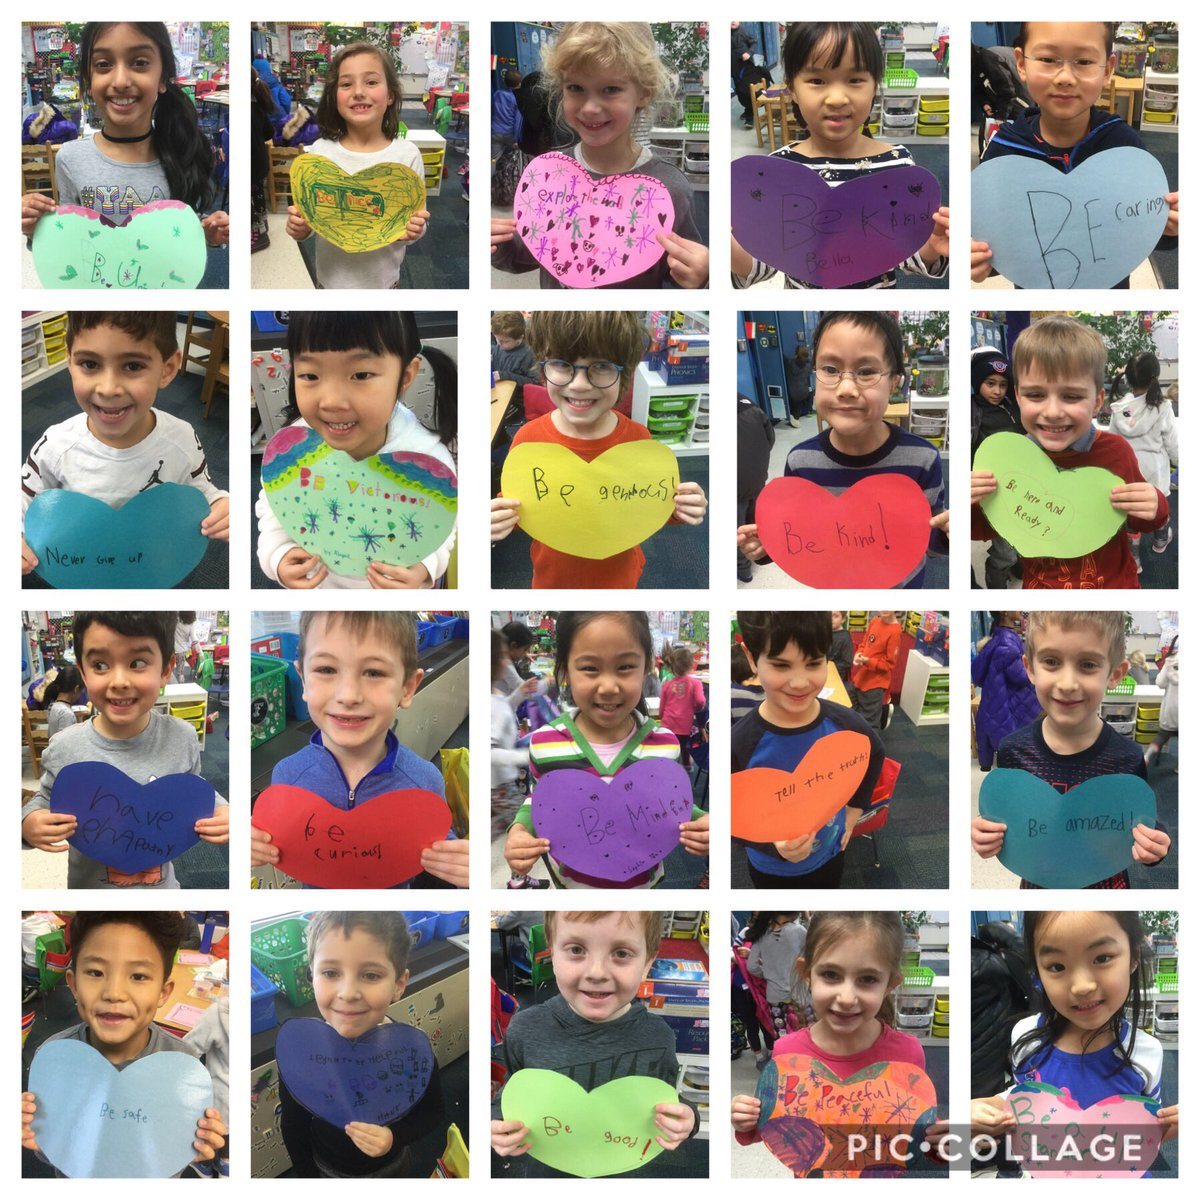 test Twitter Media - Look at this amazing group of learners! @WescottSL #d30learns https://t.co/G21xTZoU1e